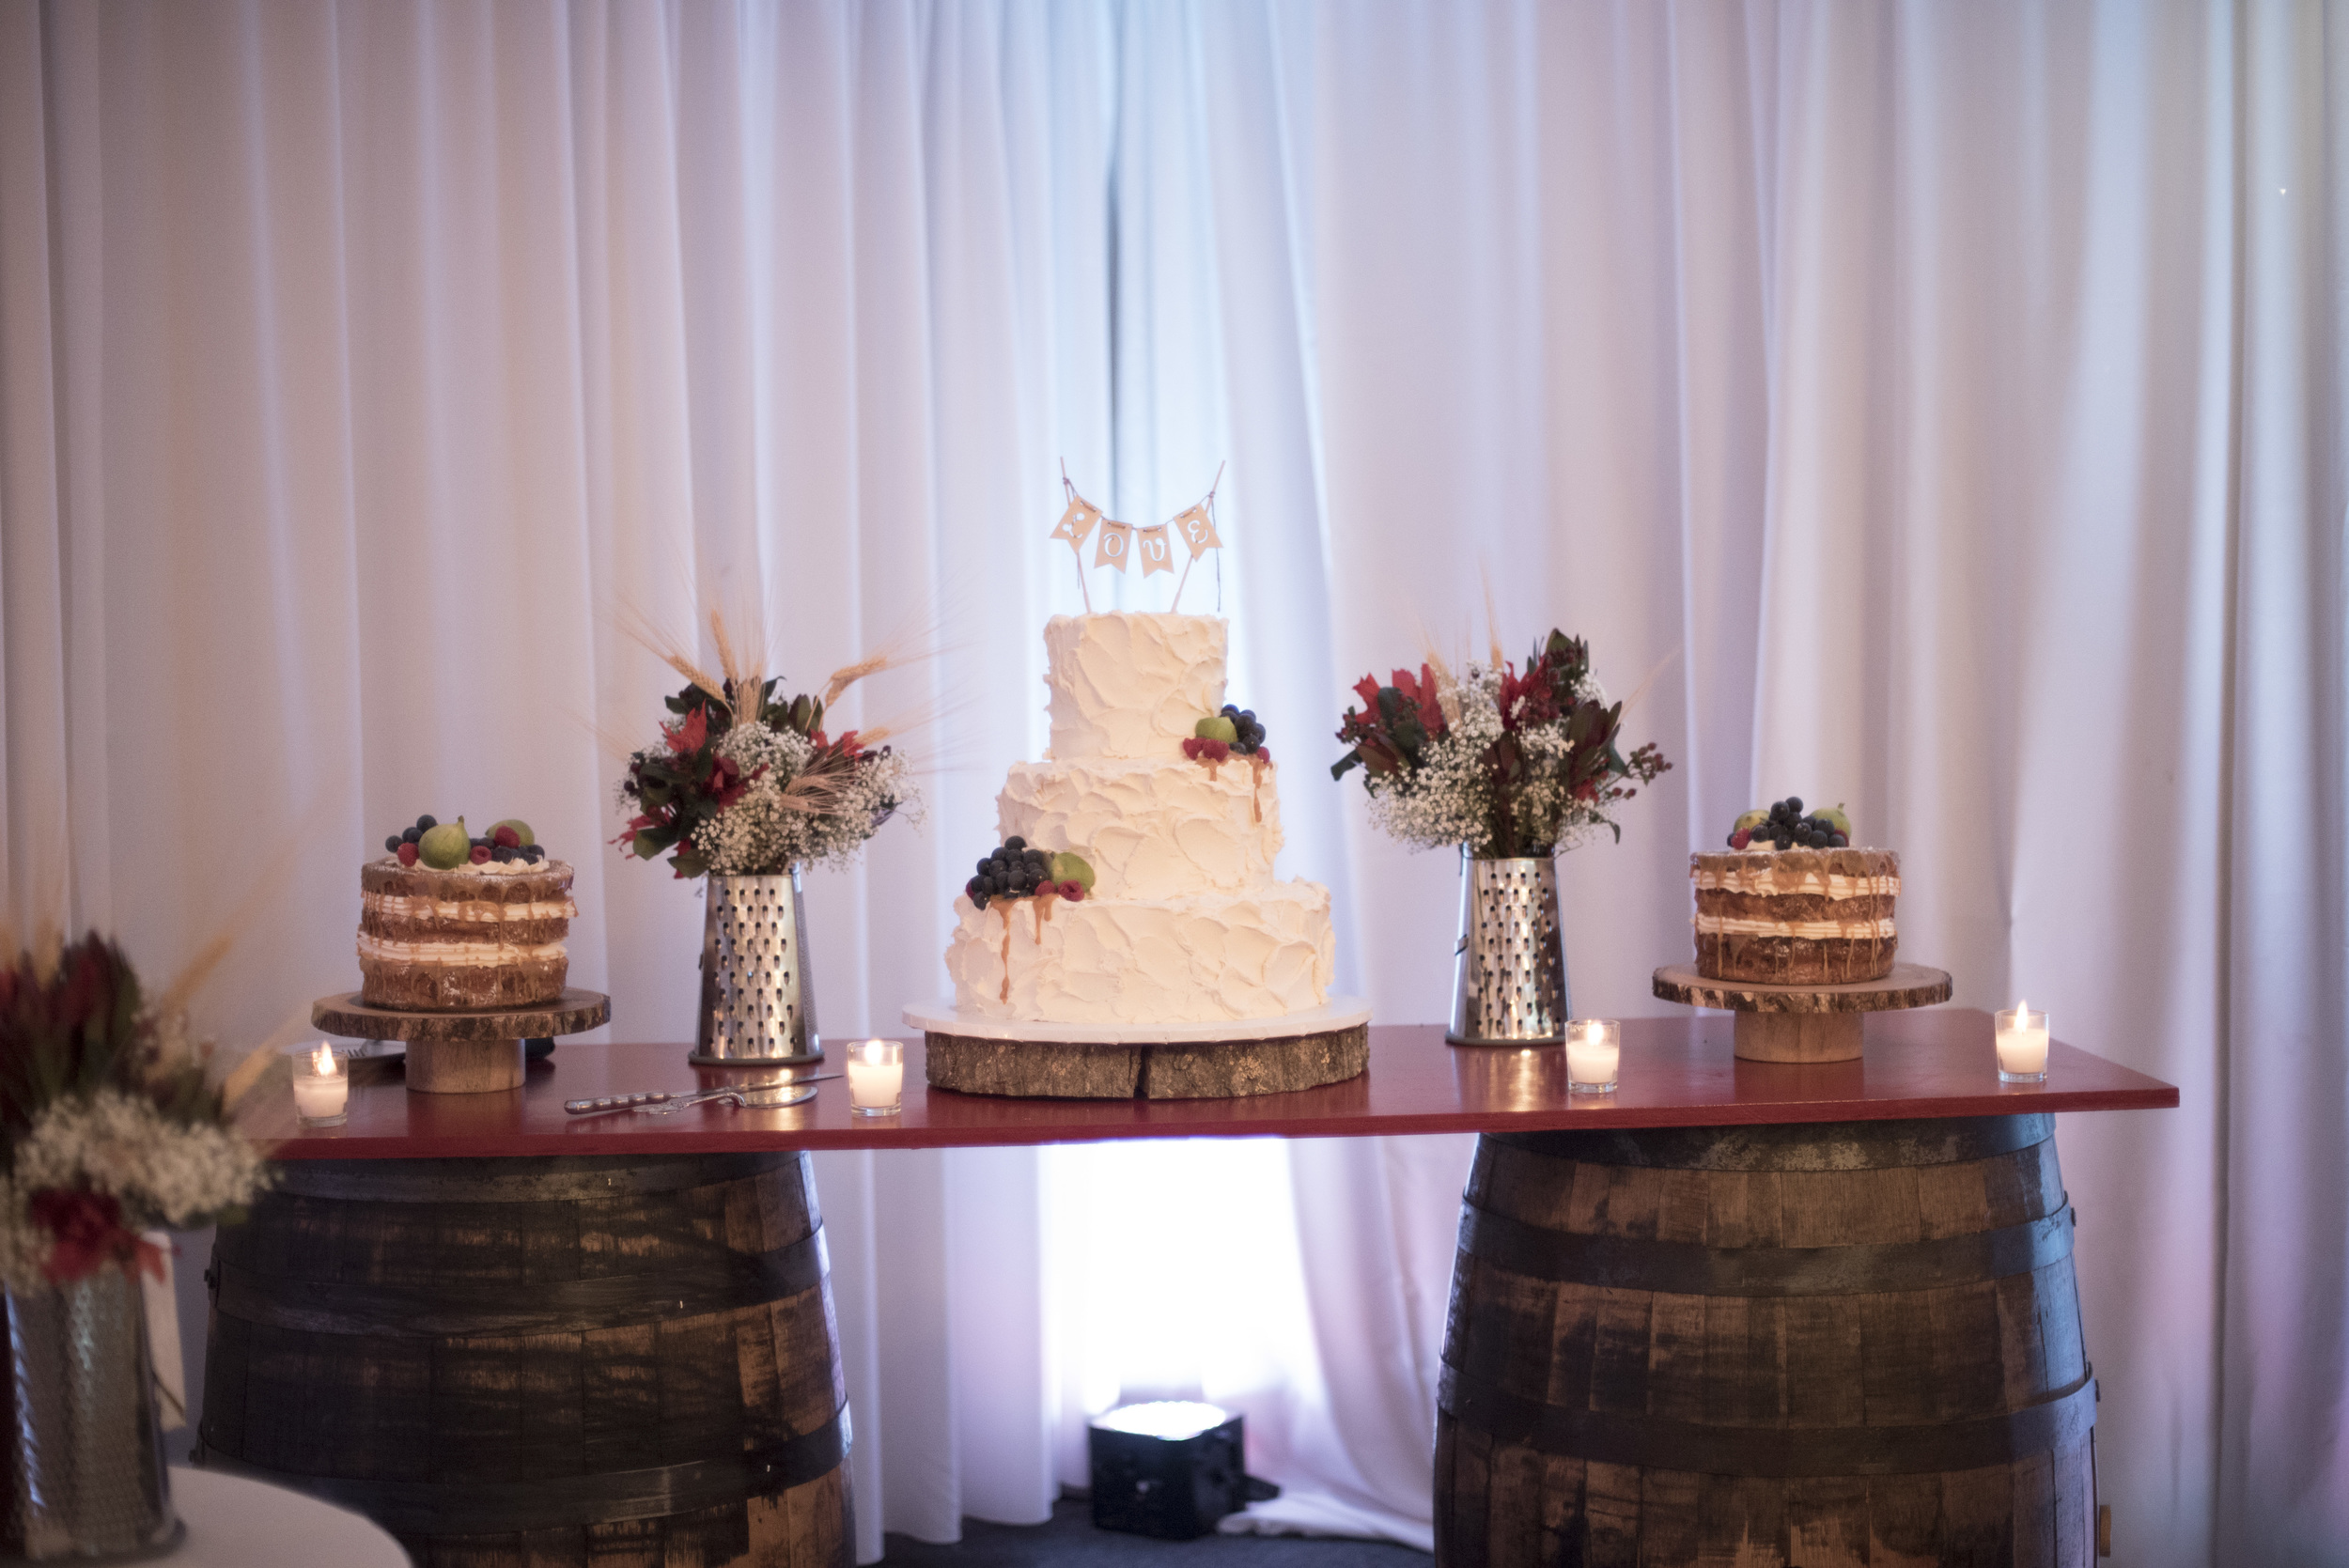 All cakes, favors, planning, and venue decor by  2SweetLLC .